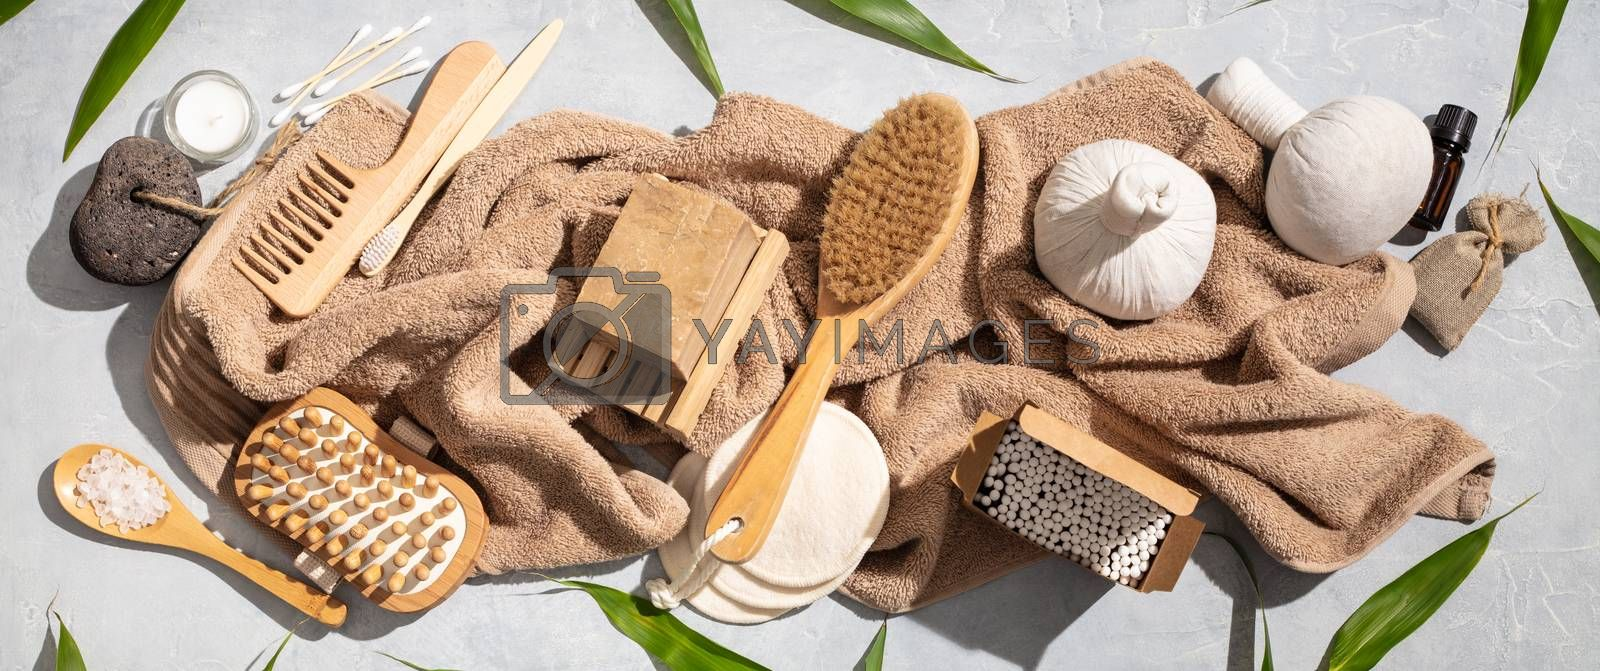 Zero waste, eco friendly bathroom and spa accessories on concrete background, flat lay